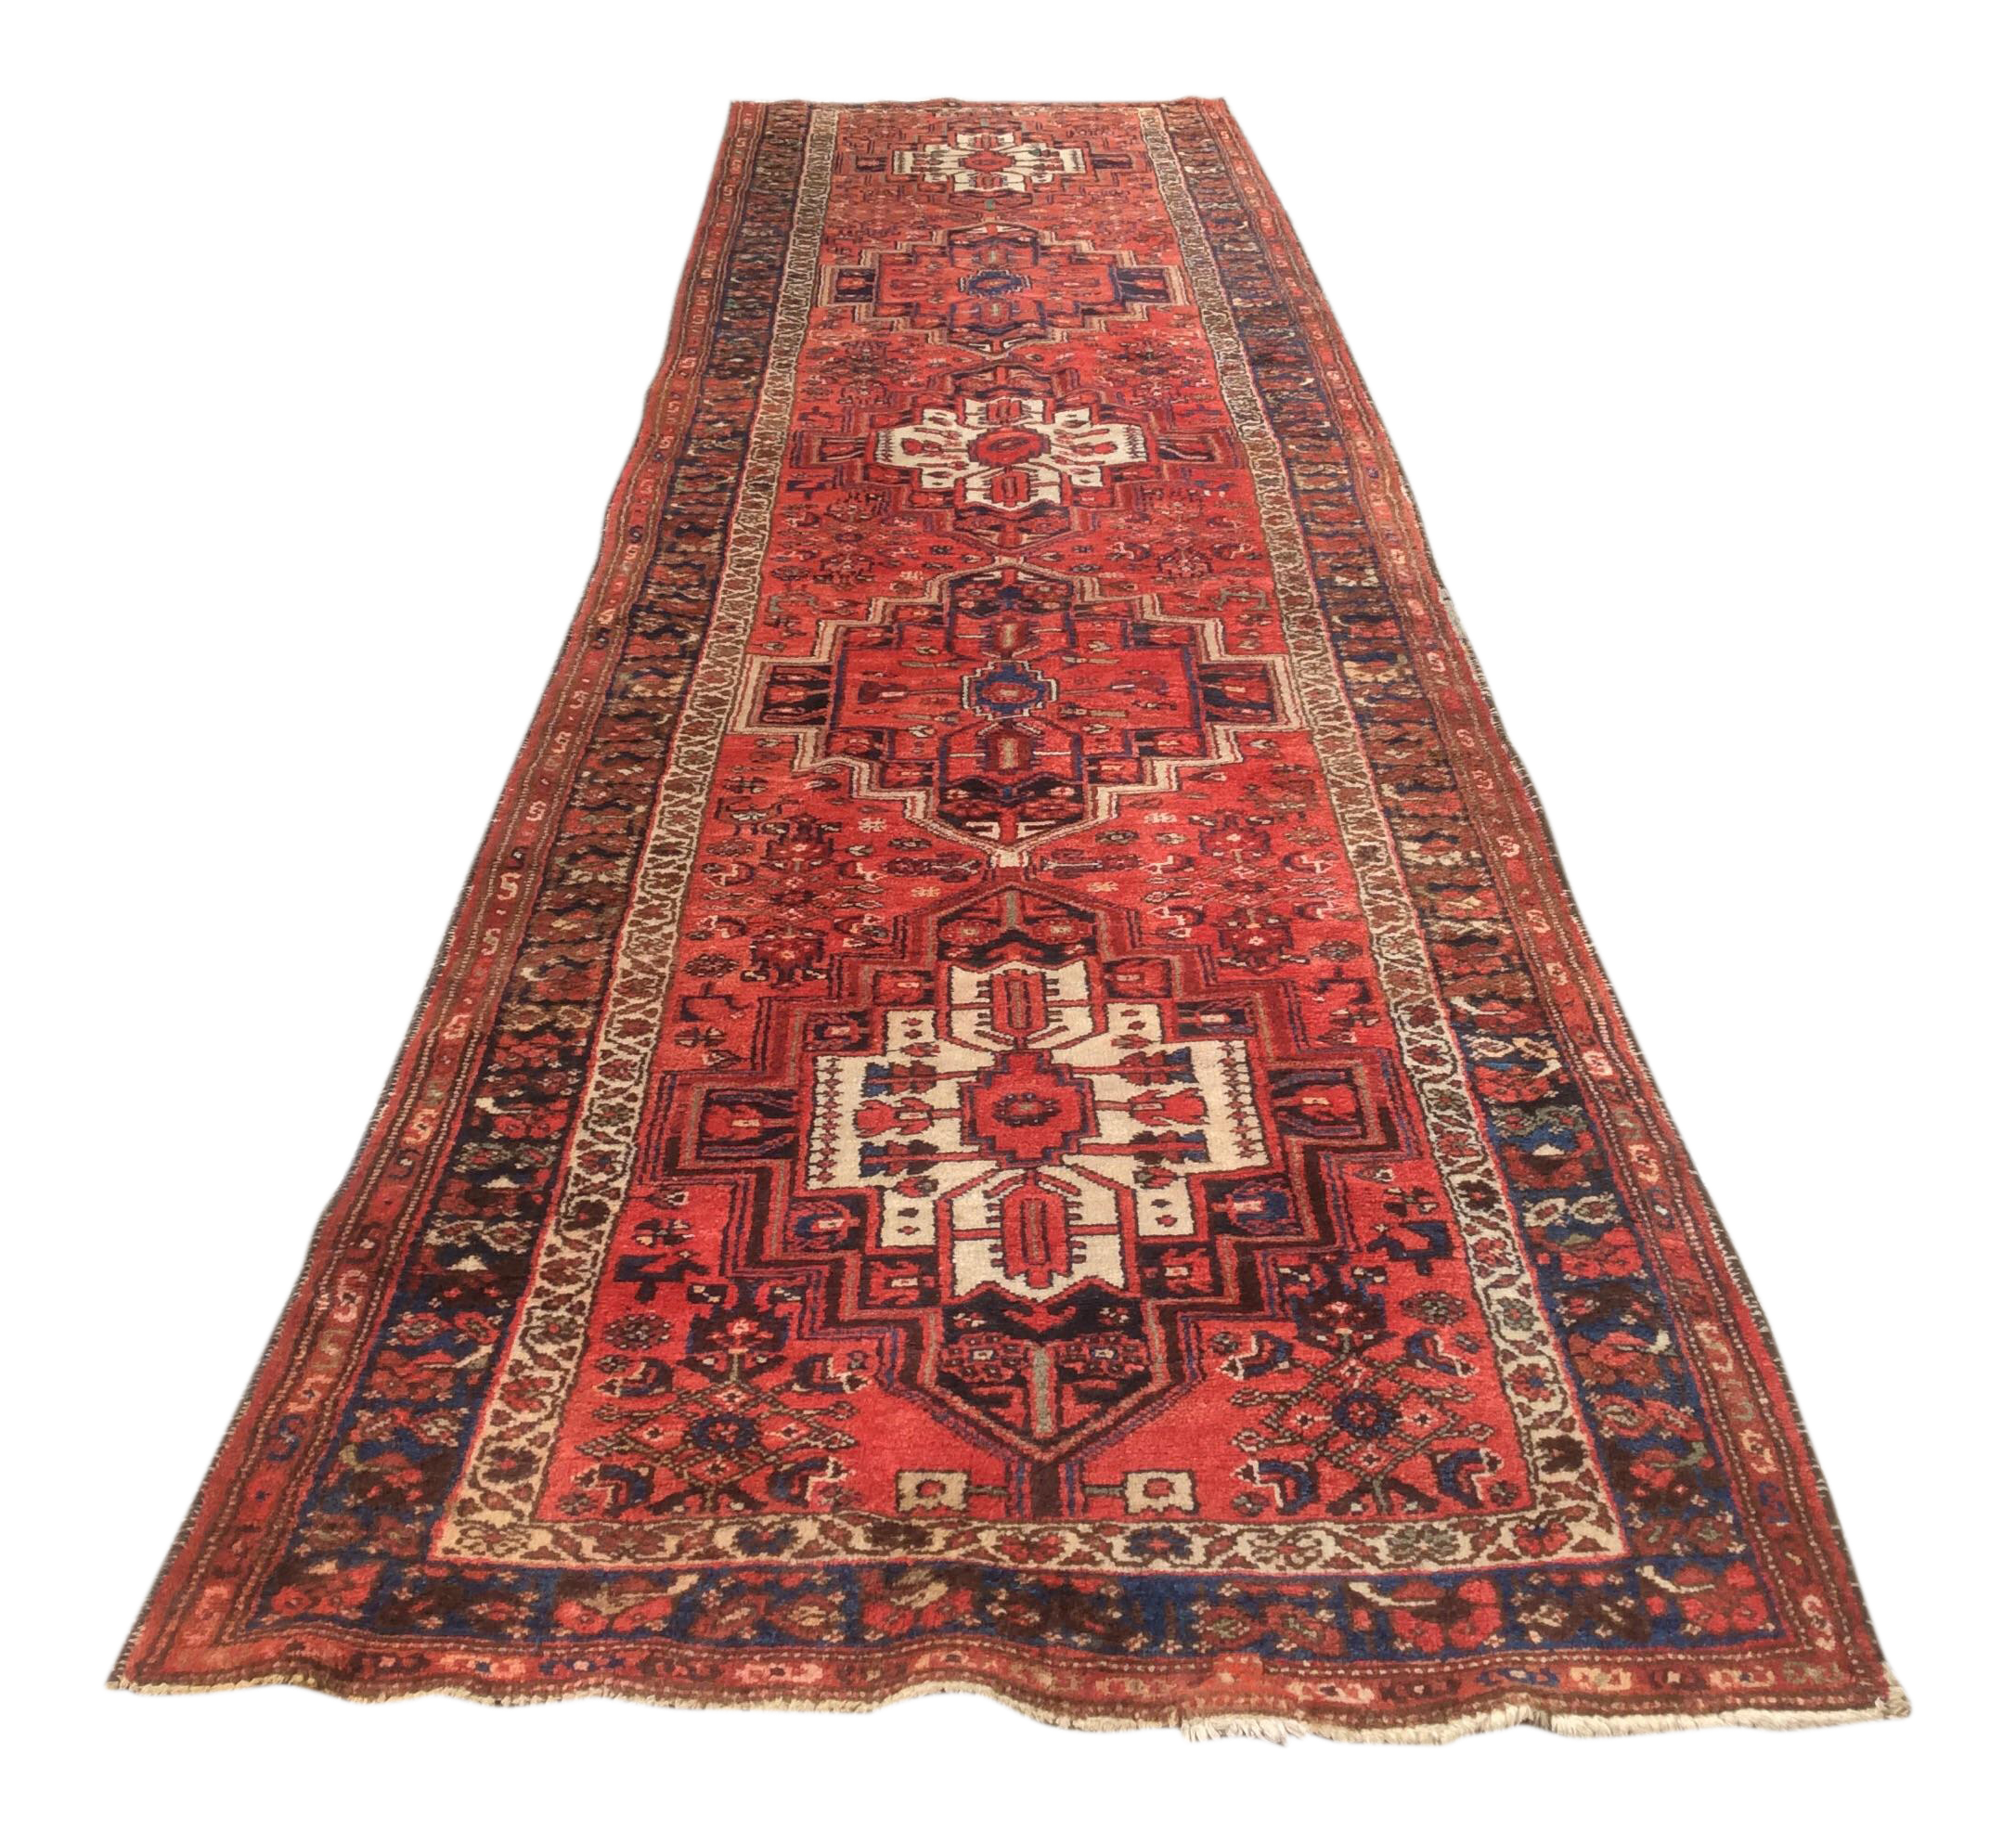 Antique Red Blue Persian Rug 3 6 13 3 Chairish